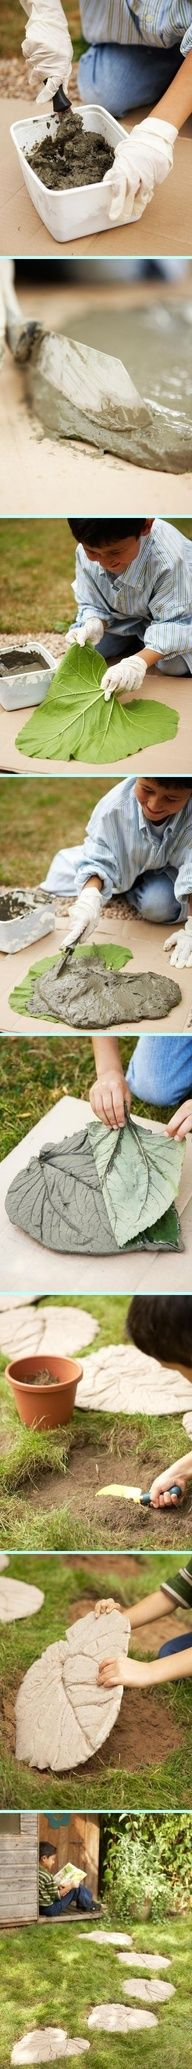 Leaf stepping stones DIY.